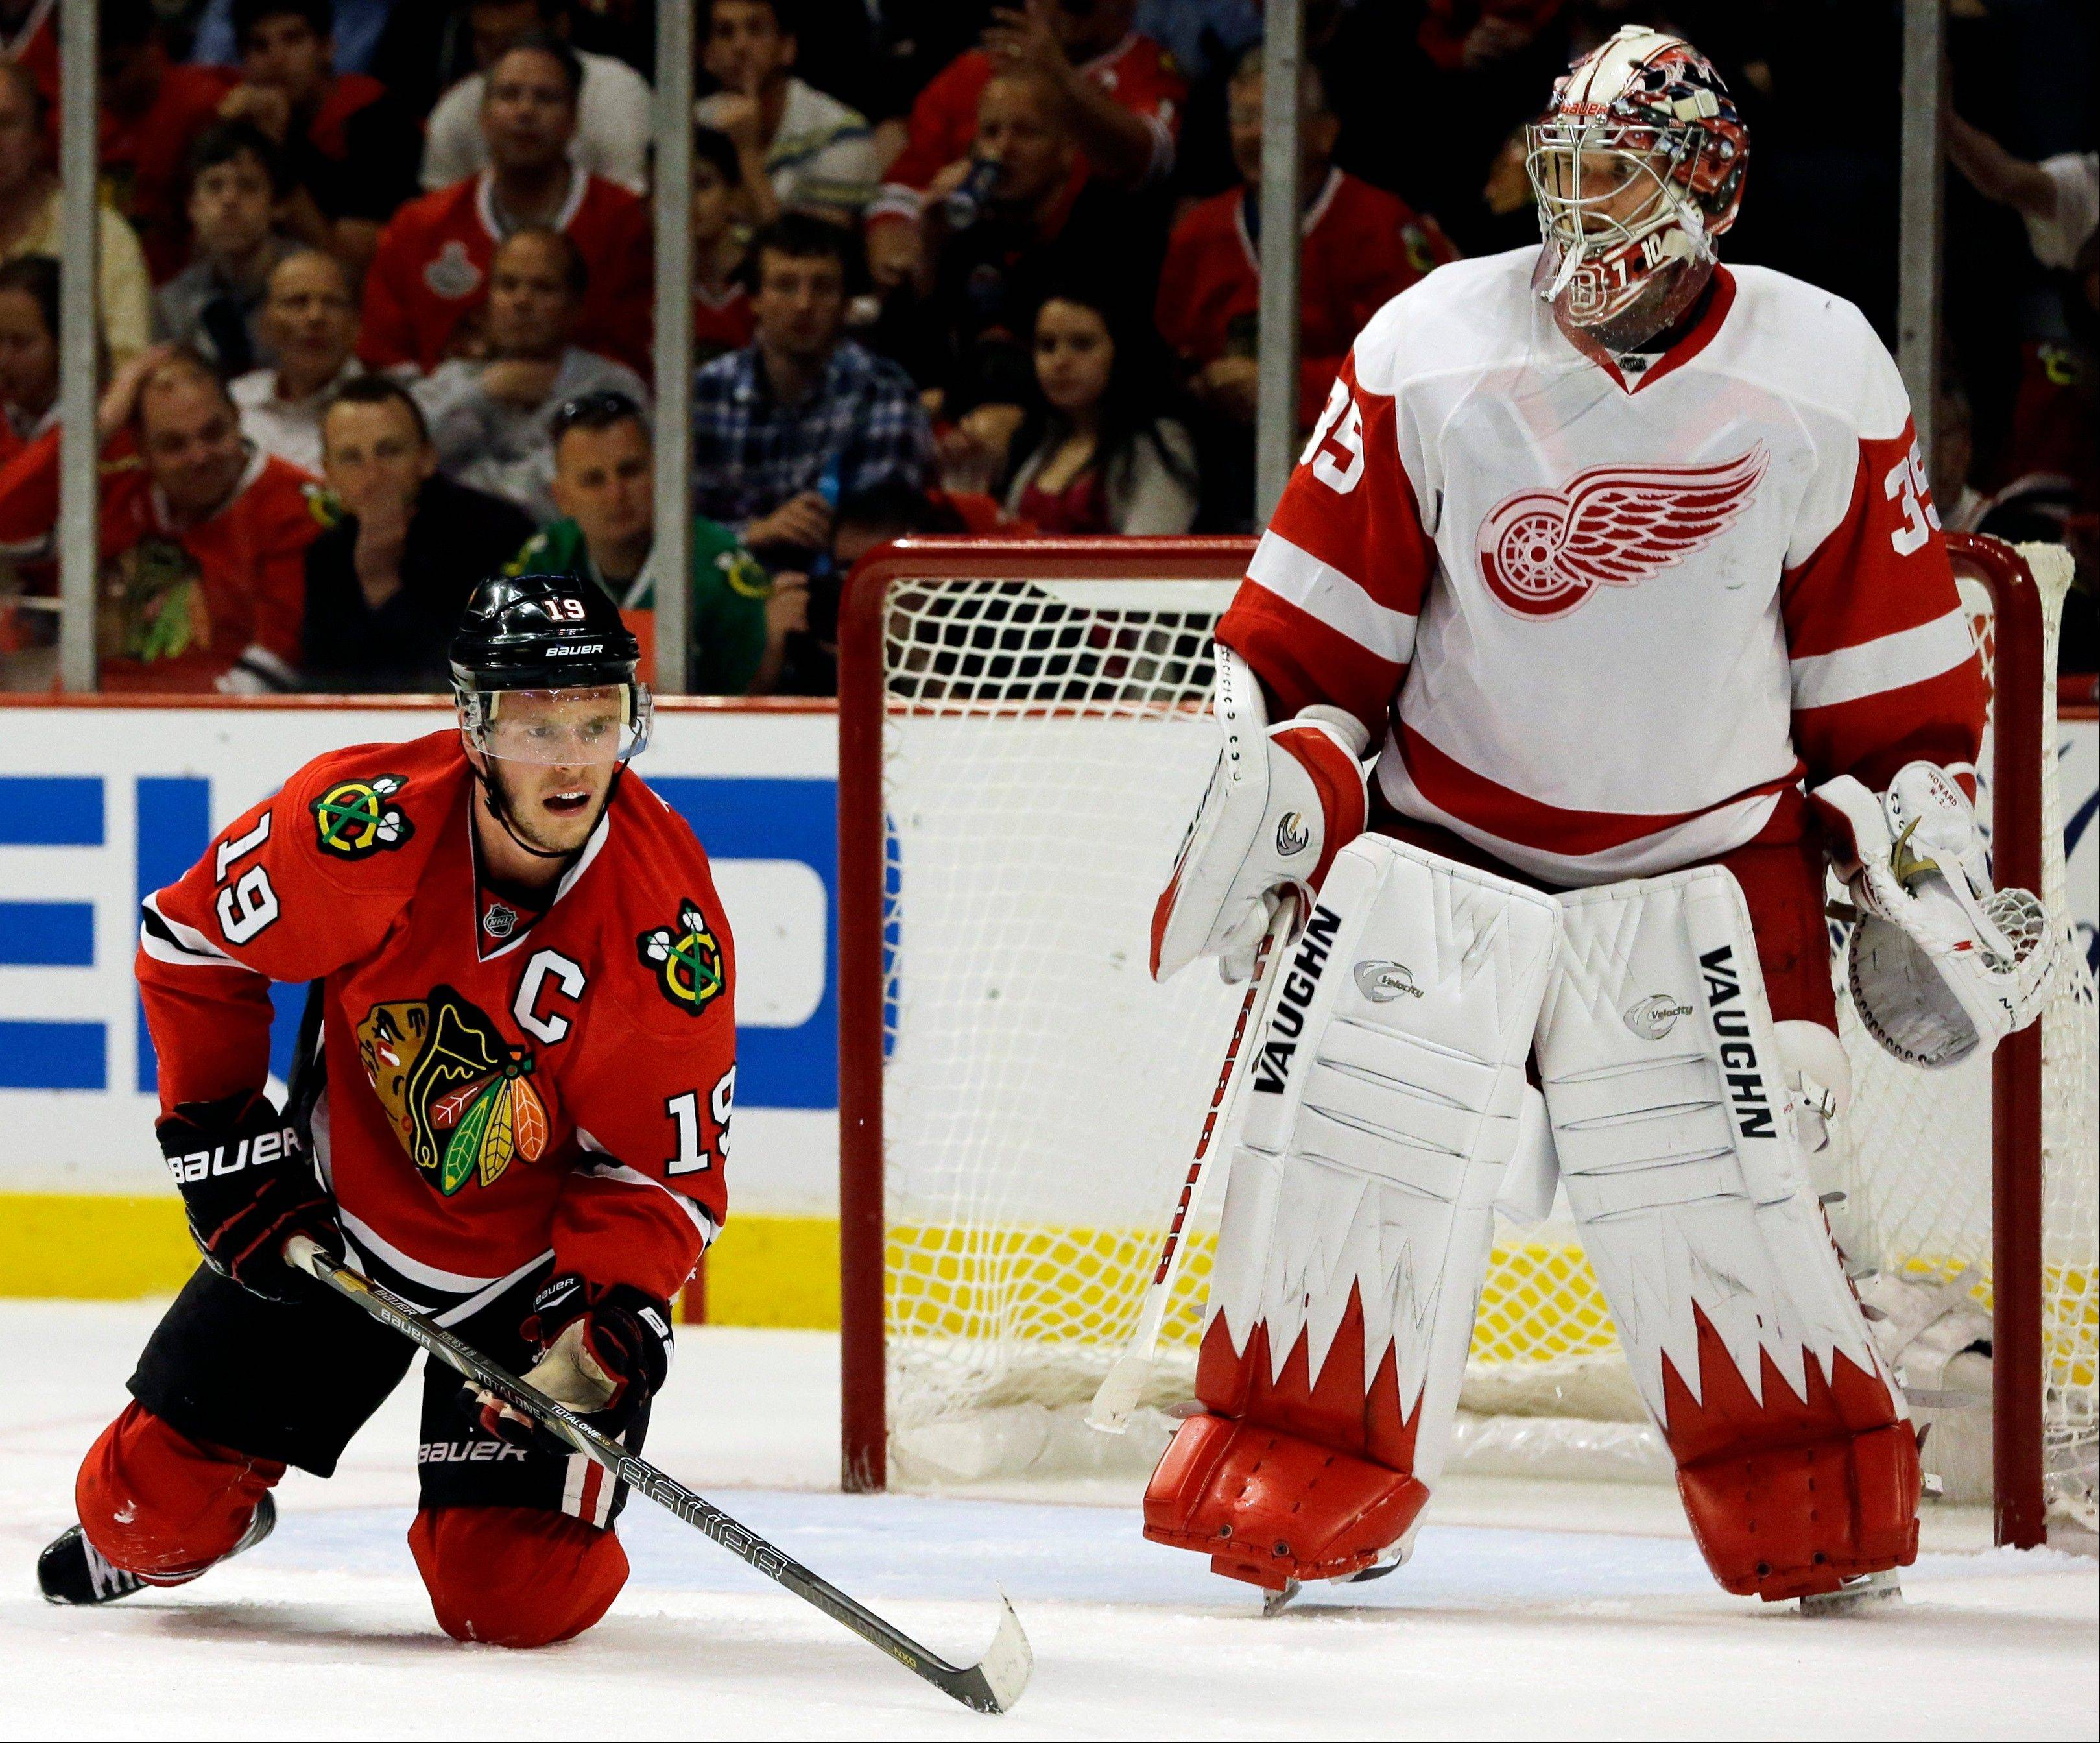 Jonathan Toews has not scored a goal in eight playoff games this postseason, but Red Wings goalie Jimmy Howard said that the Blackhawks captain �is the heart and soul of that team and sort of sets the tone for them.�